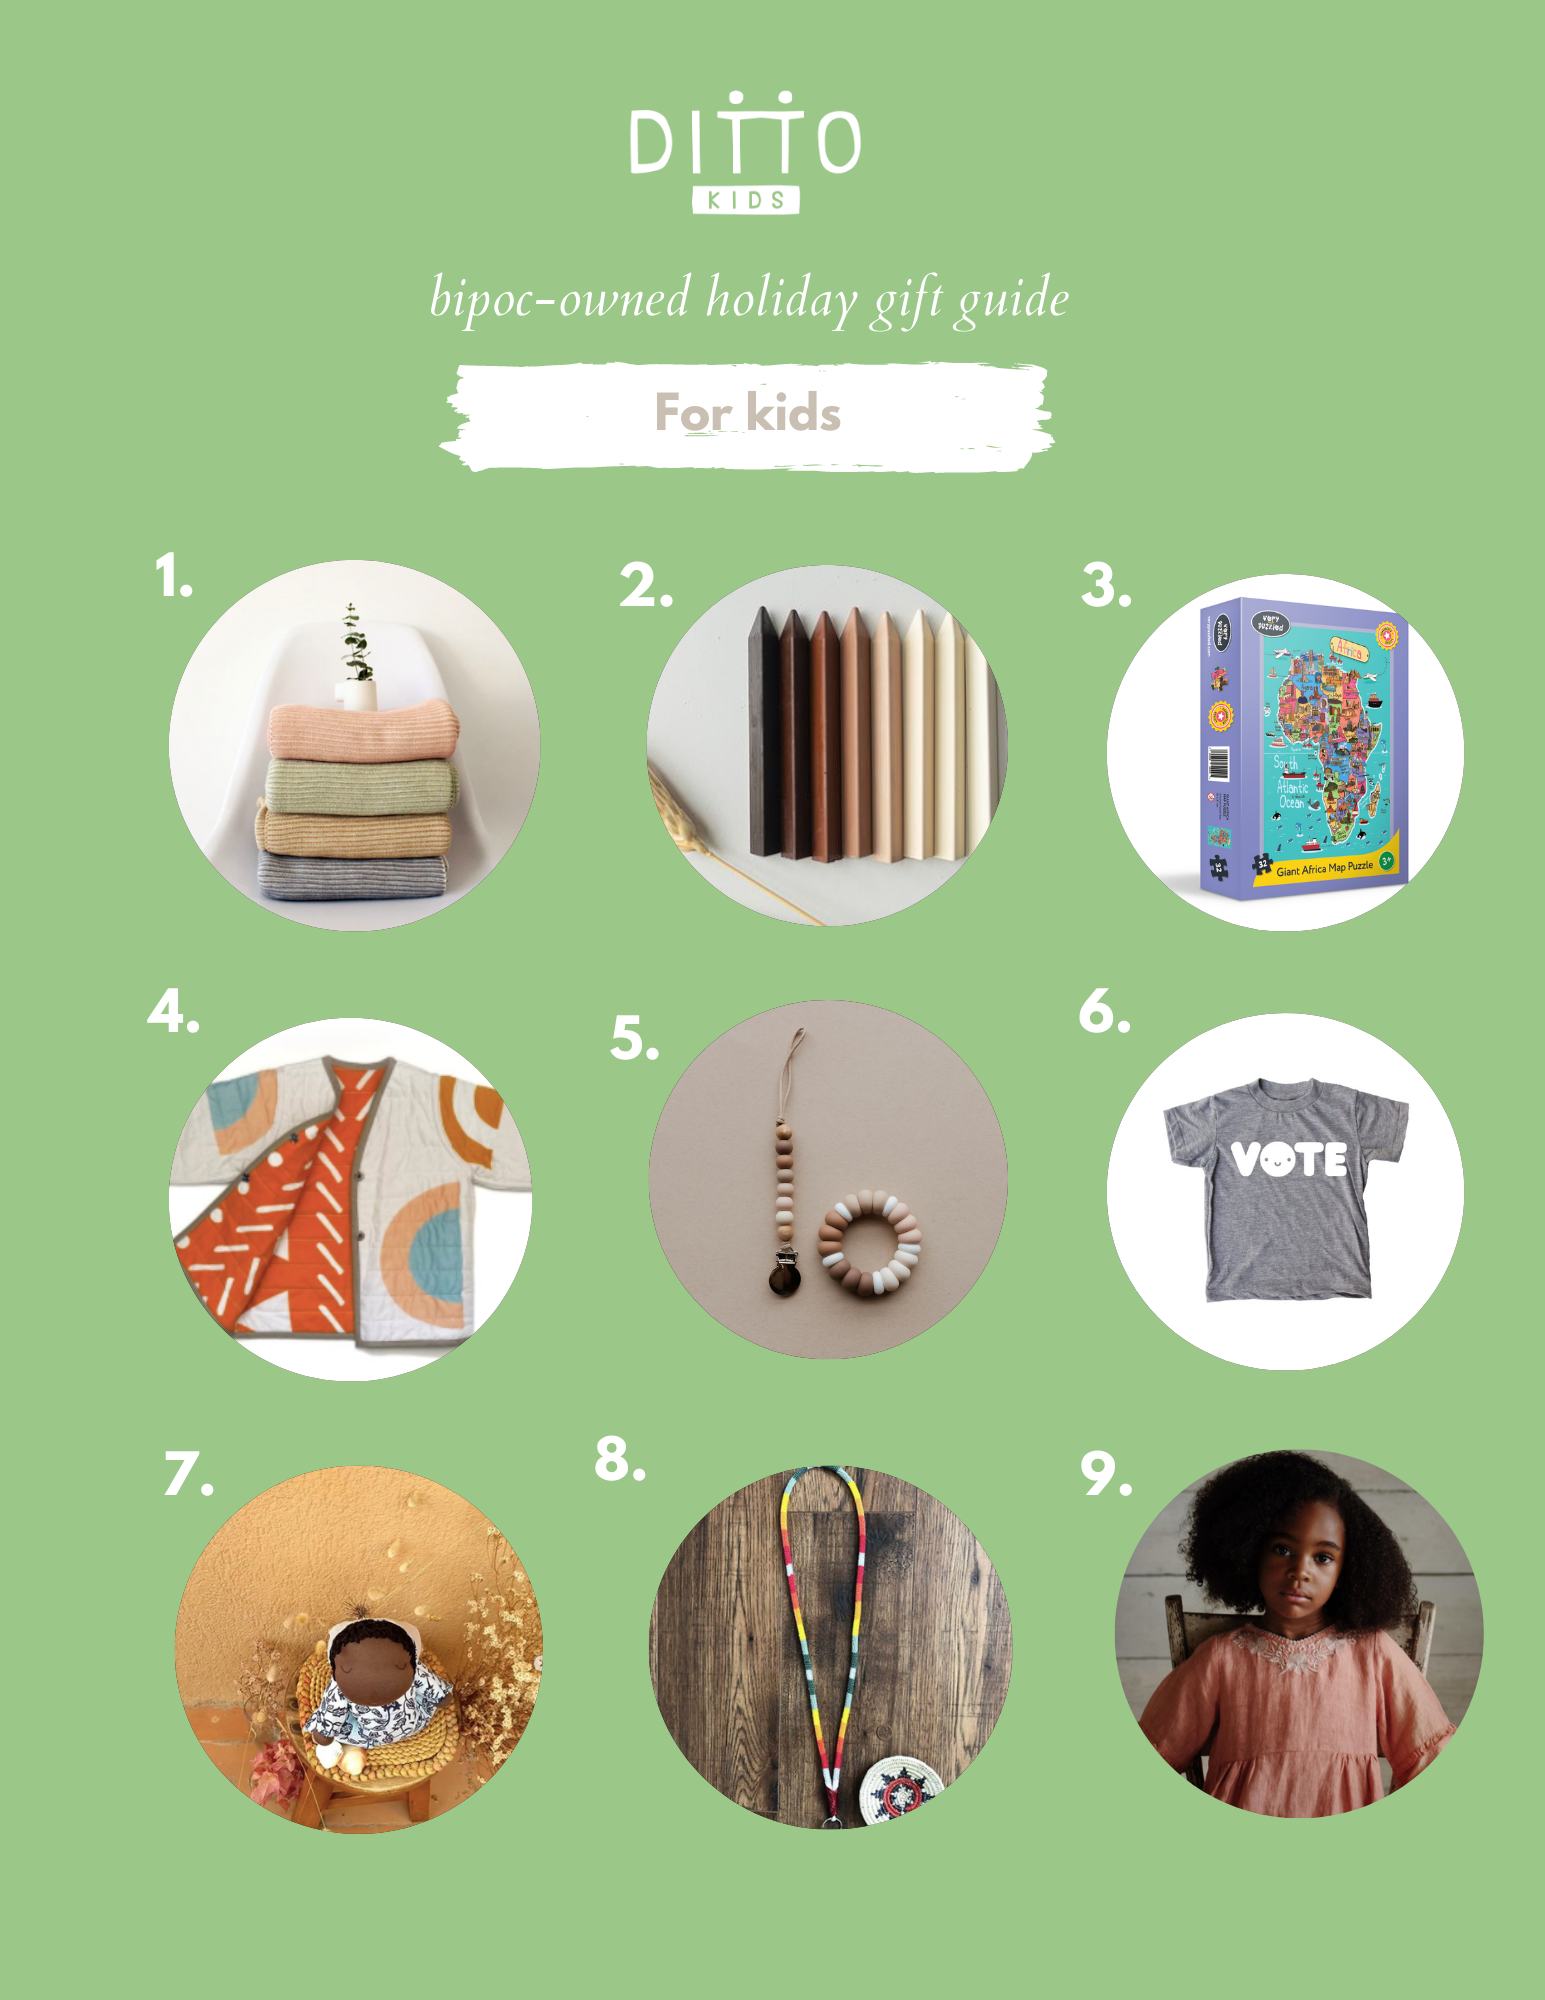 Ditto Kids BIPOC-owned gift guide